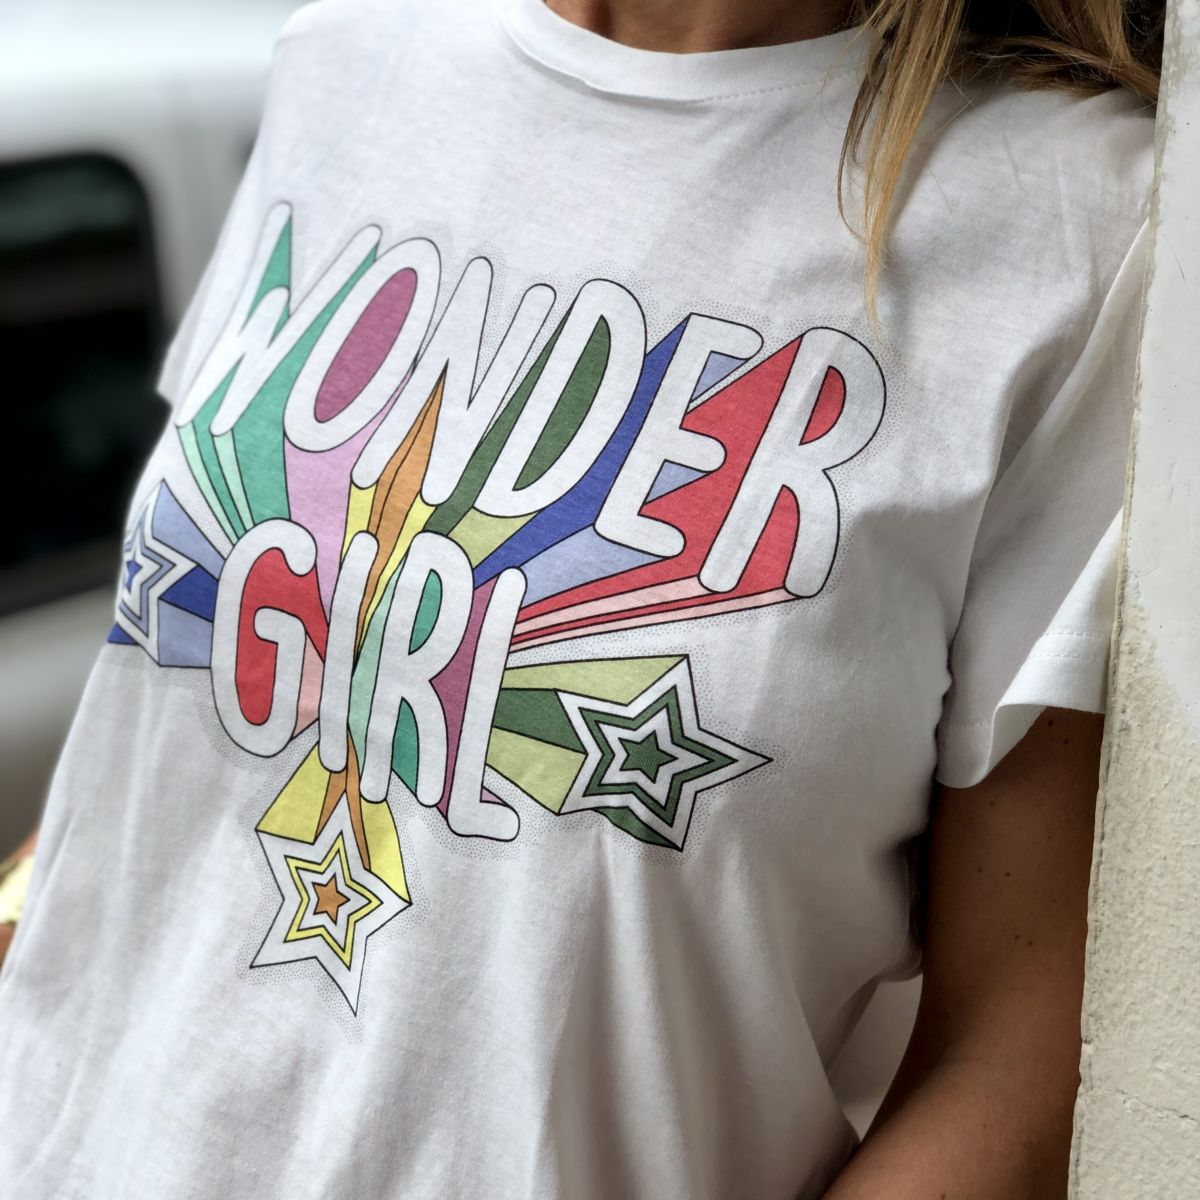 Tee shirt blanc message wonder girl col rond manches courtes by Destele